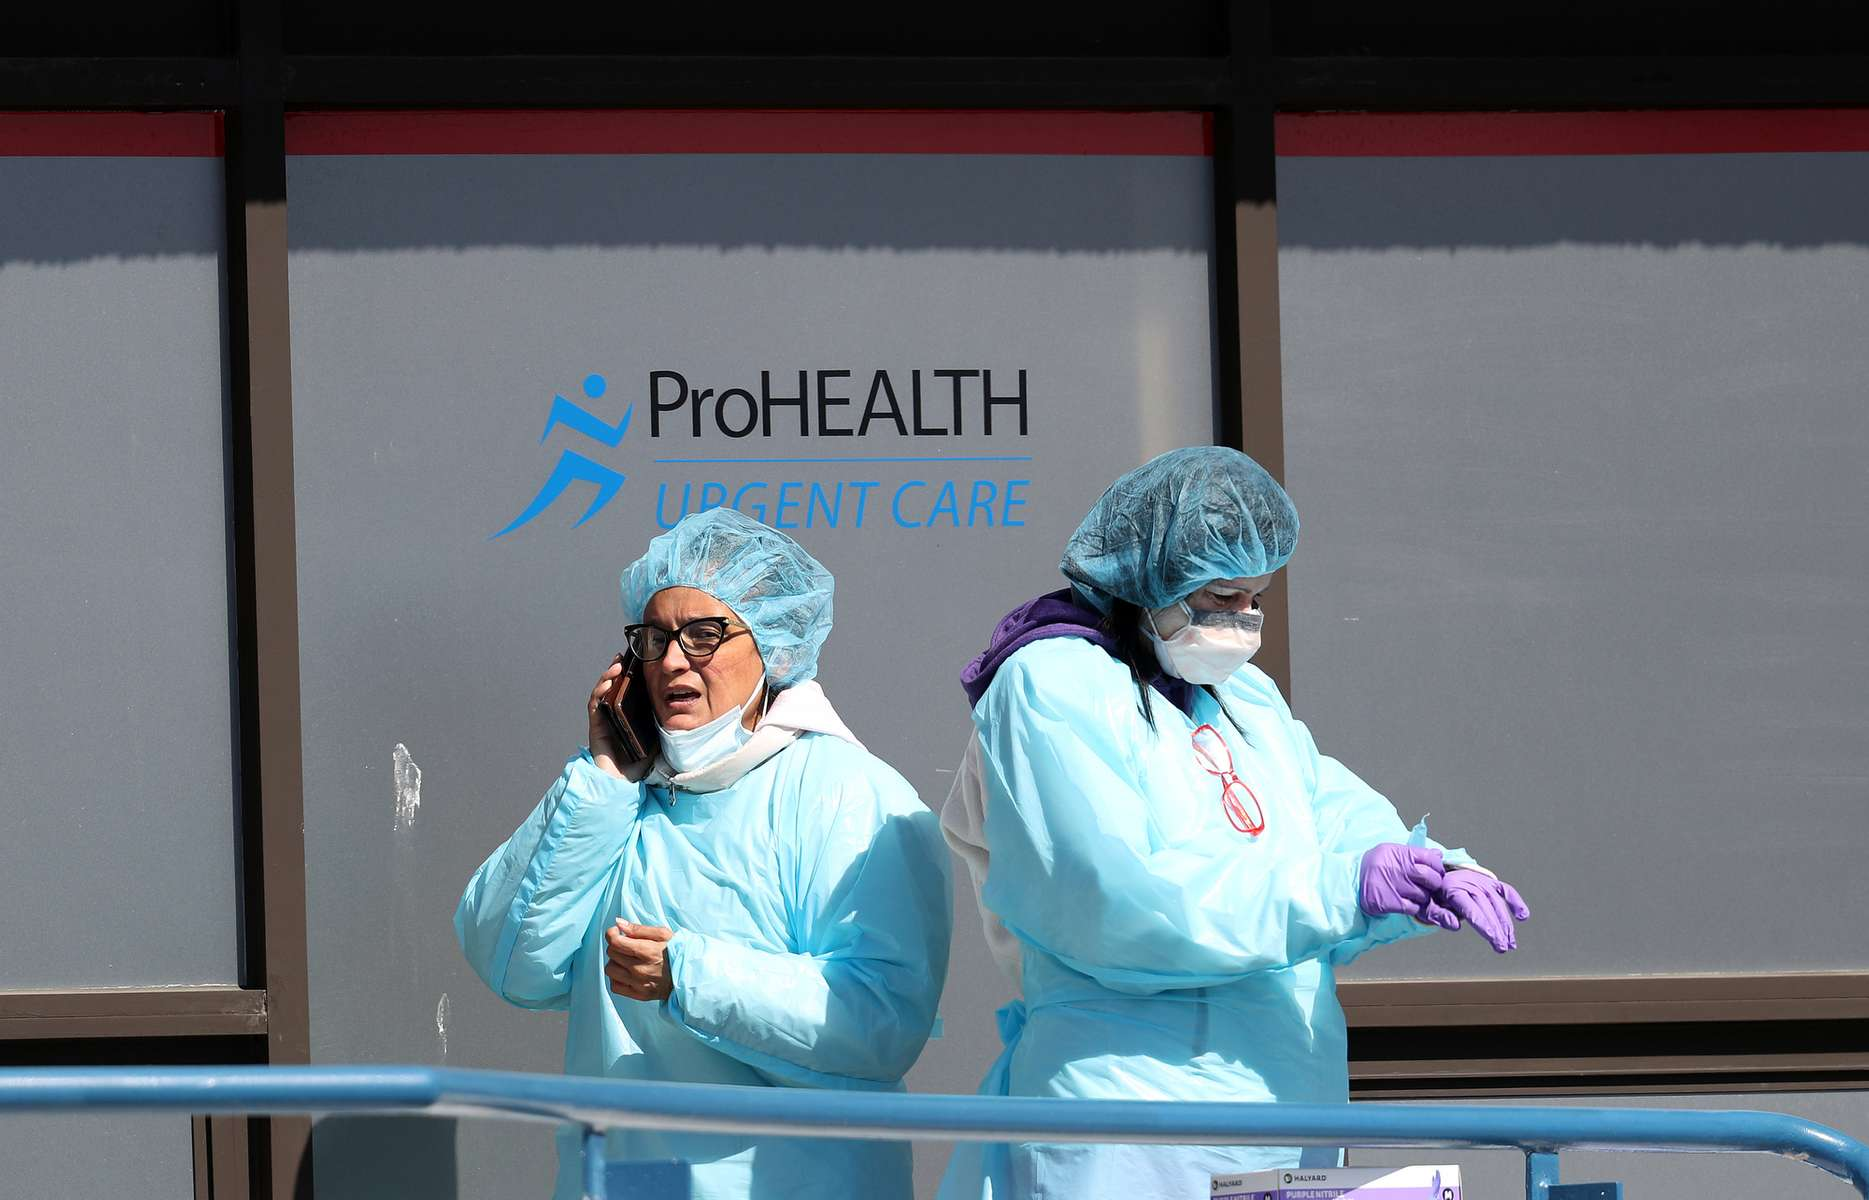 Medical professionals take a break at a drive-thru coronavirus testing site run by  ProHealth Care on April 06, 2020 in Jericho, New York. The World Health Organization declared coronavirus (COVID-19) a global pandemic on March 11th.